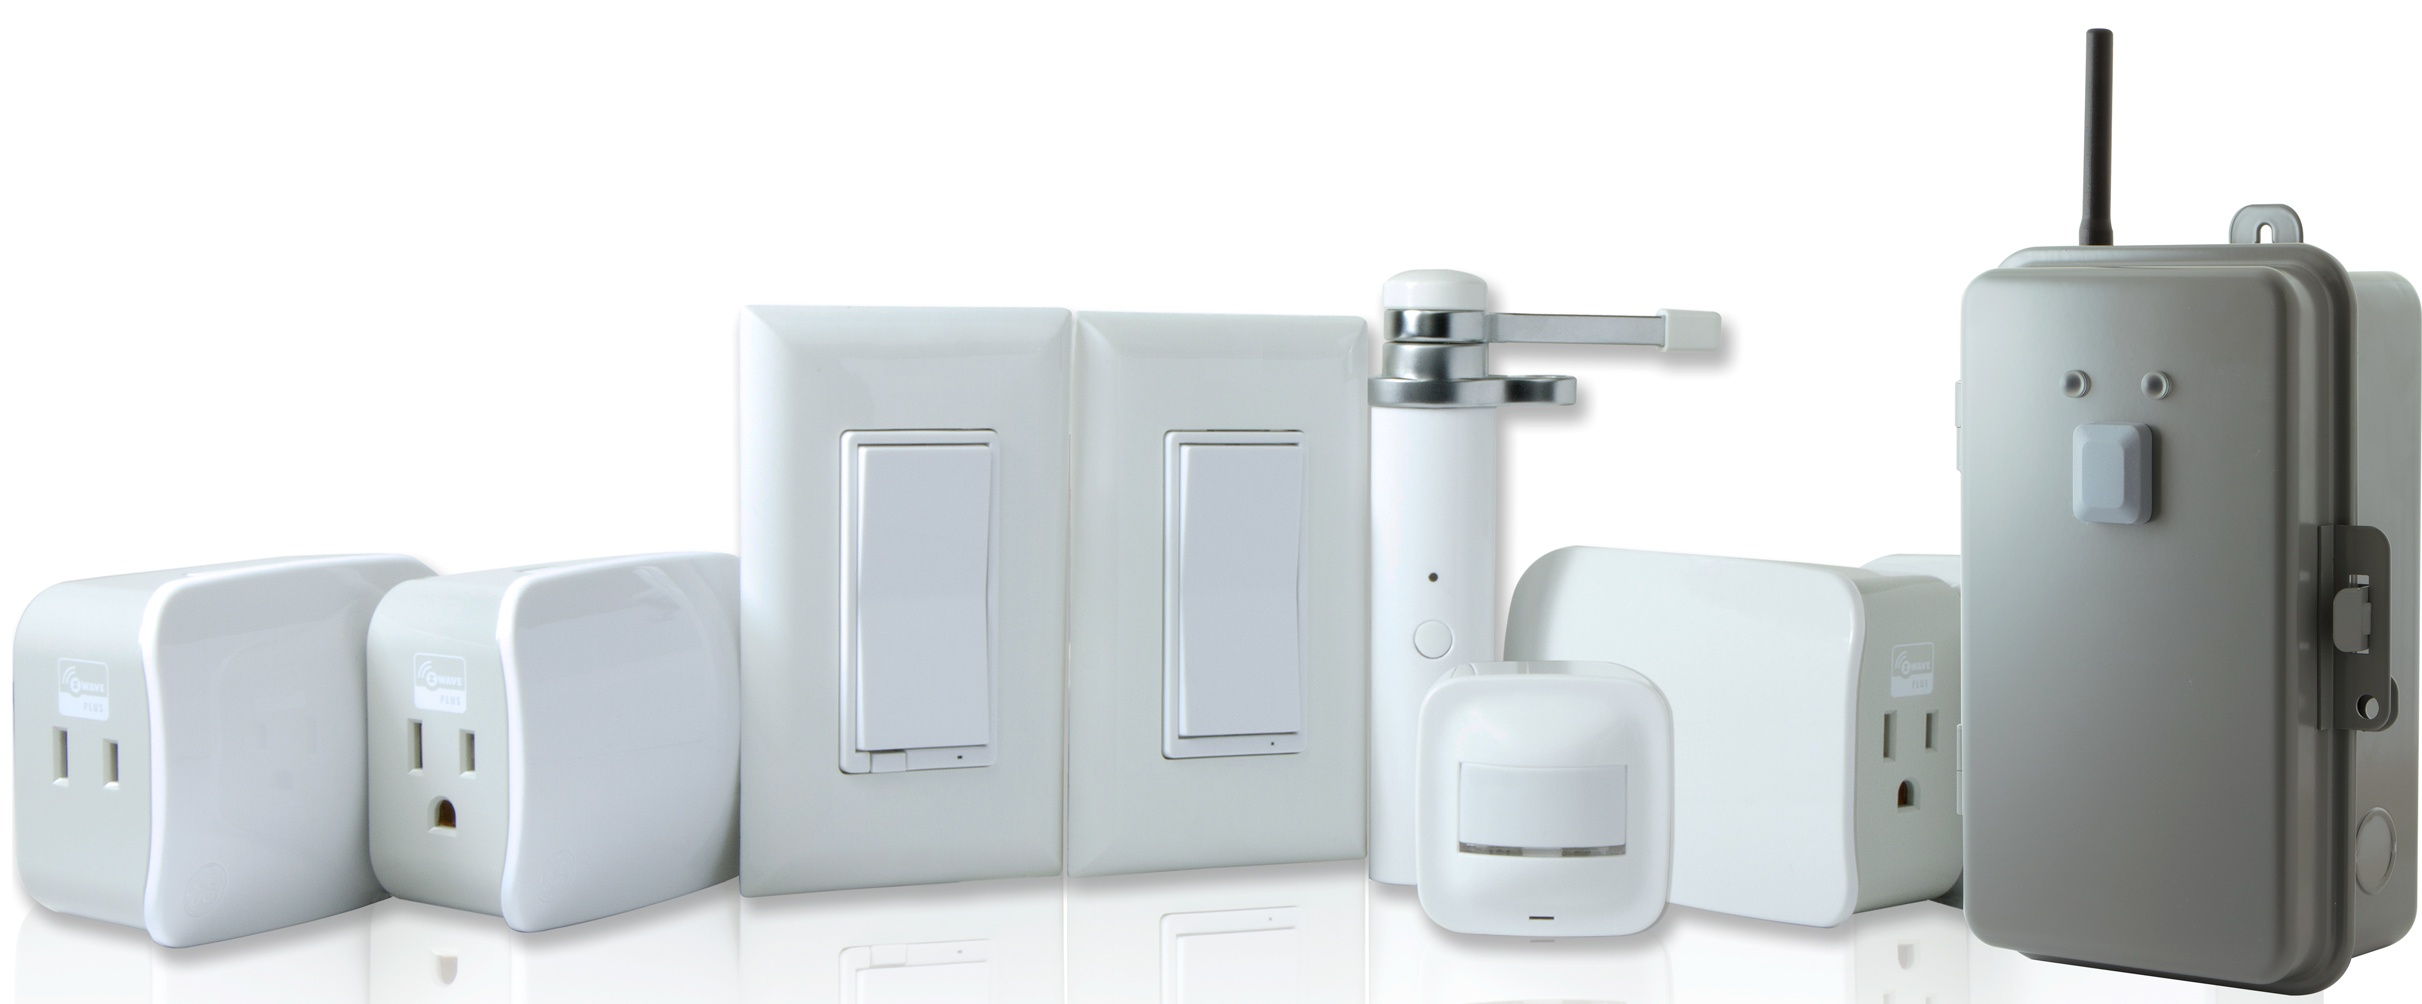 Introducing New GE Z-Wave Motion Sensors and Smart Switches